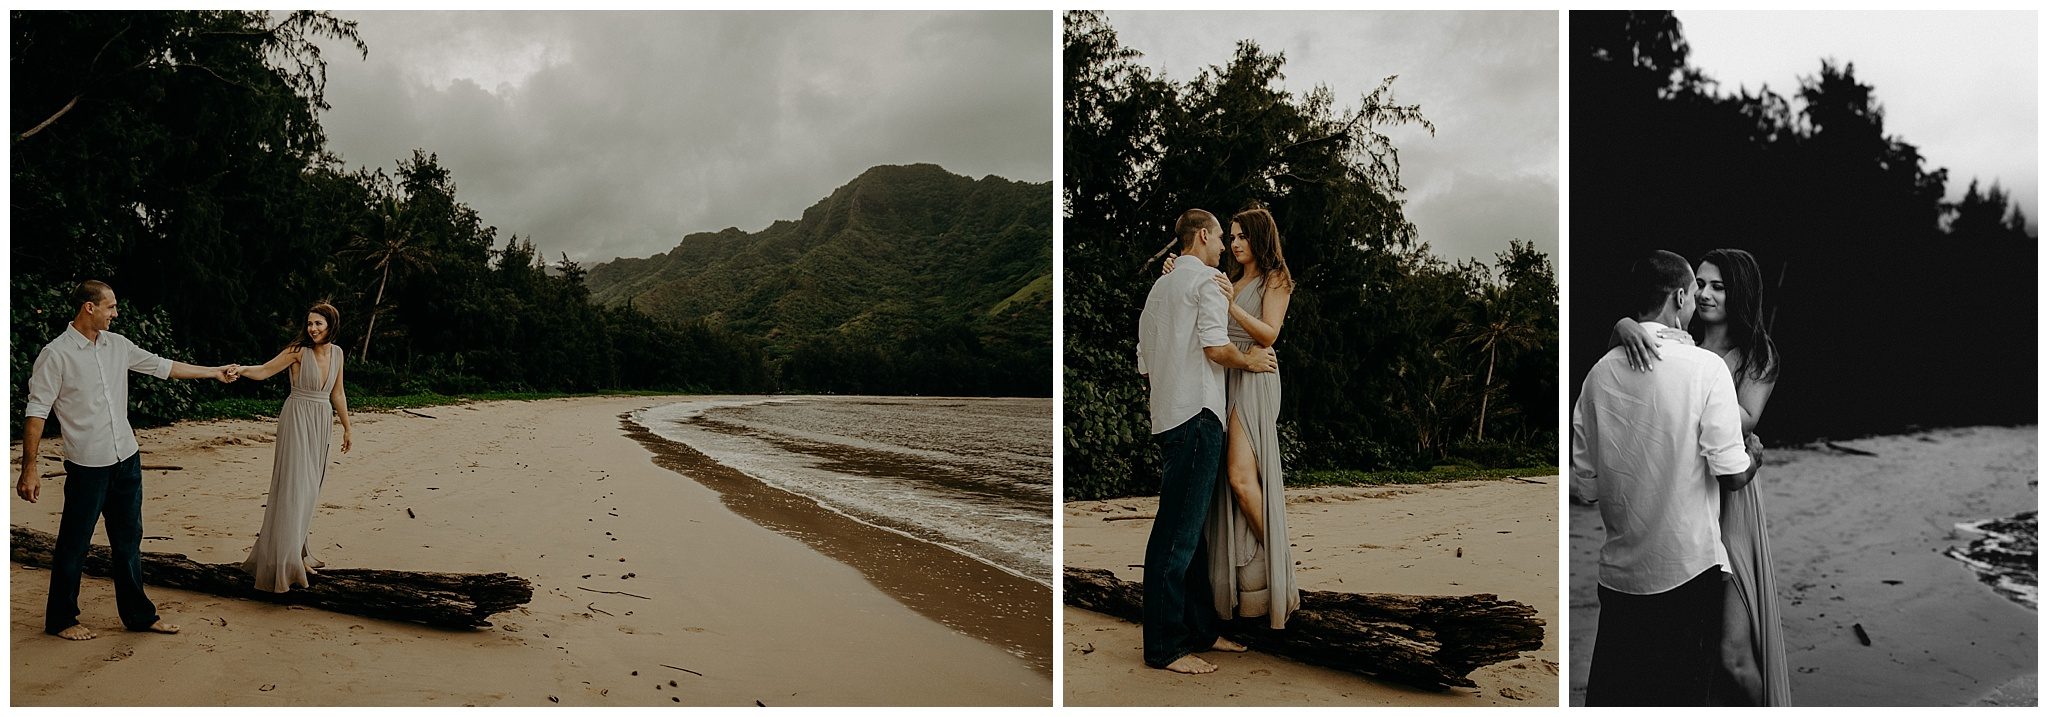 kahana-bay-engagement-photos10.jpg